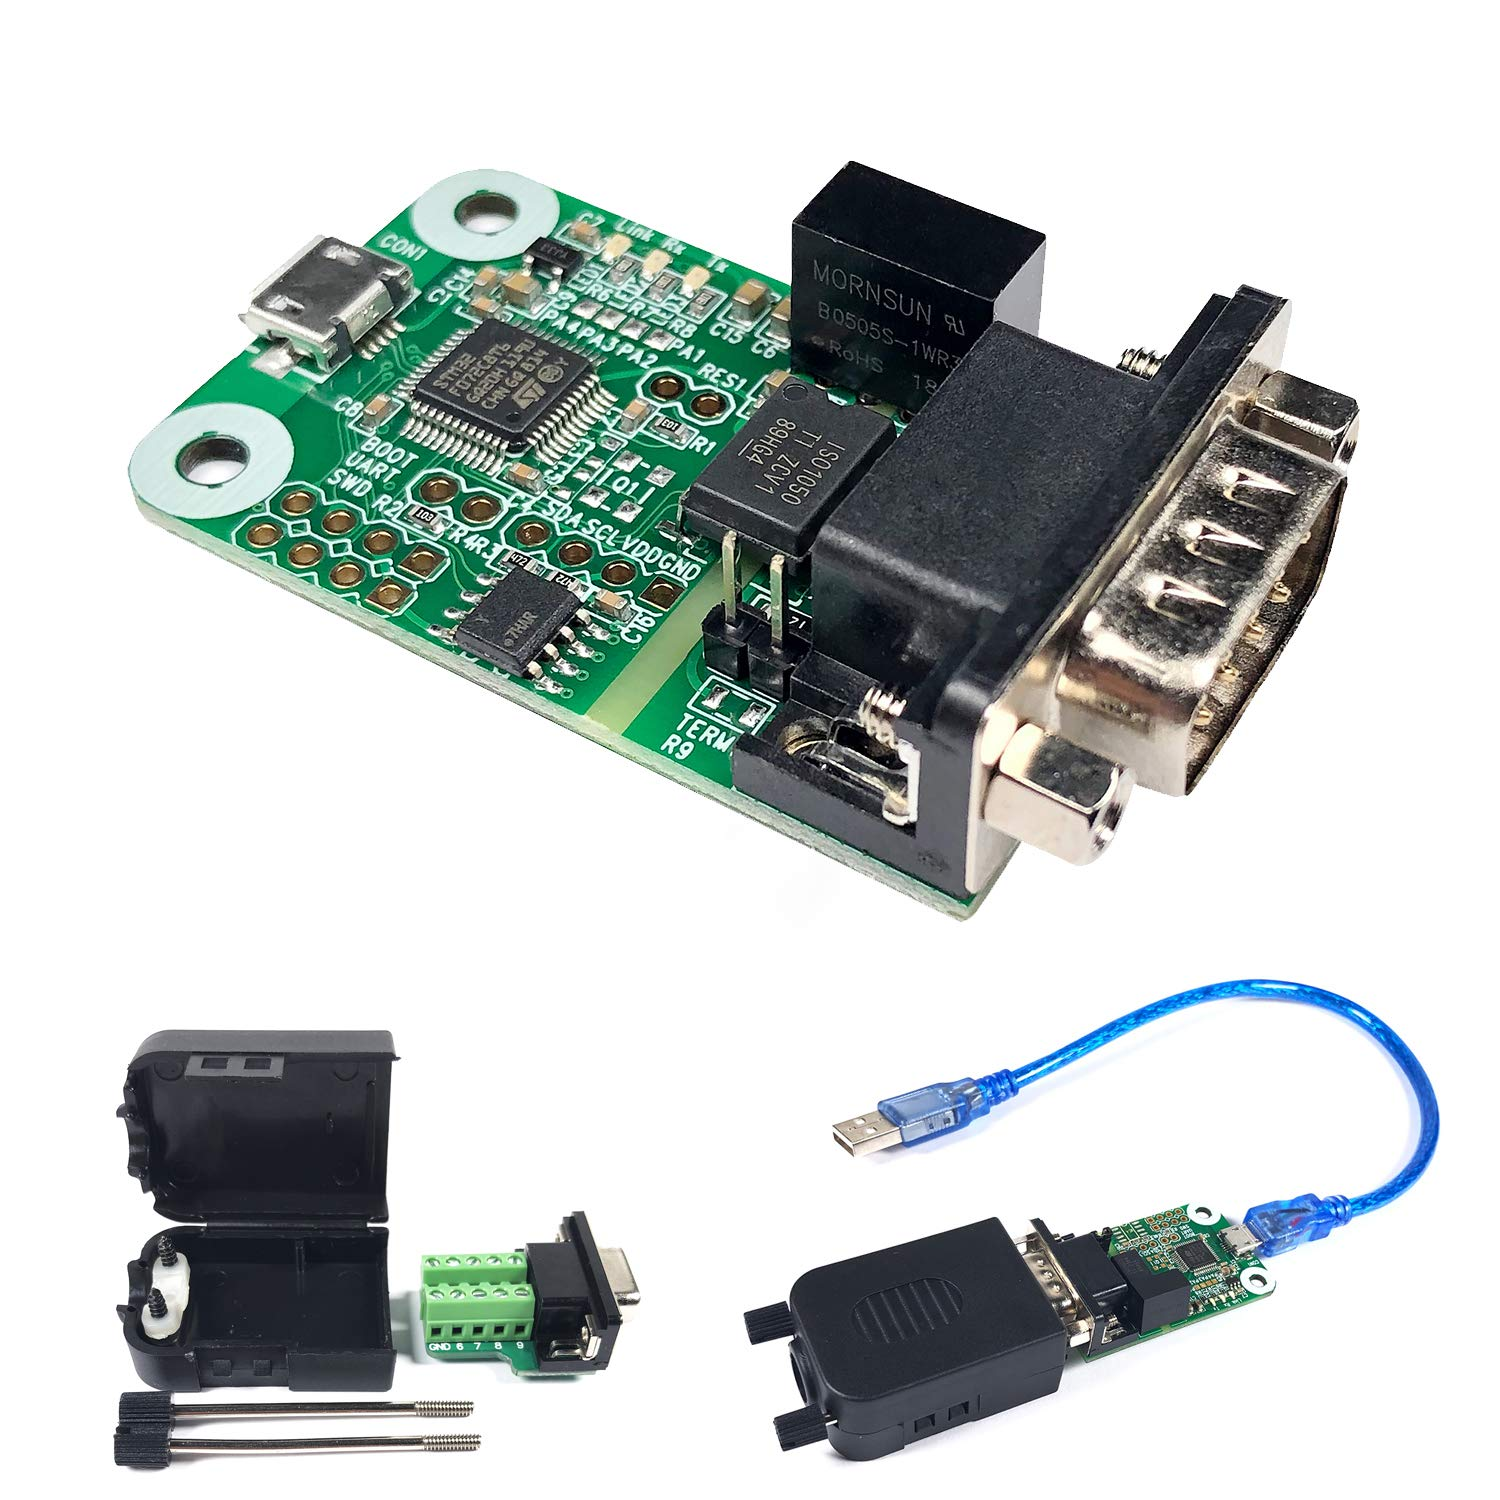 USB to CAN Converter Module, for Raspberry Pi4/Pi3B+/Pi3/Pi Zero(W)/Jetson Nano/Tinker Board and Any Single Board Computer Support Windows Linux and Mac OS